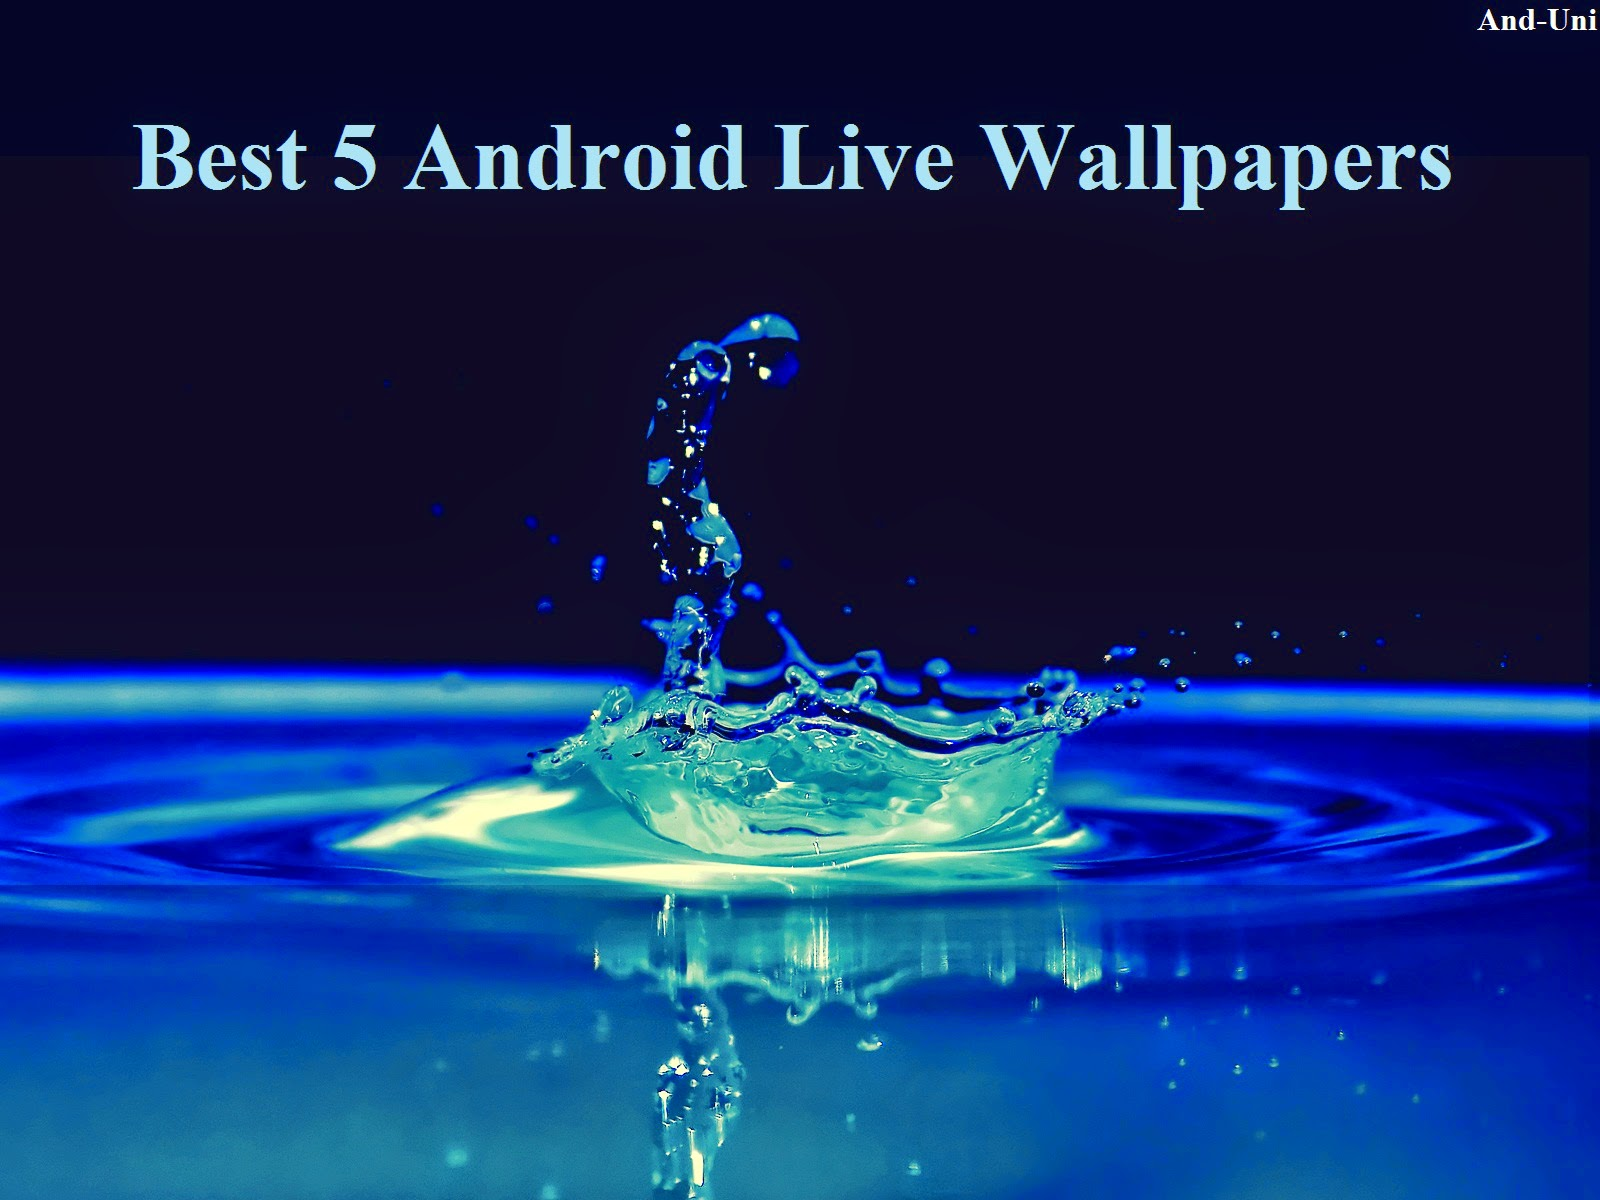 and uni best 5 hd live wallpapers of all time for android